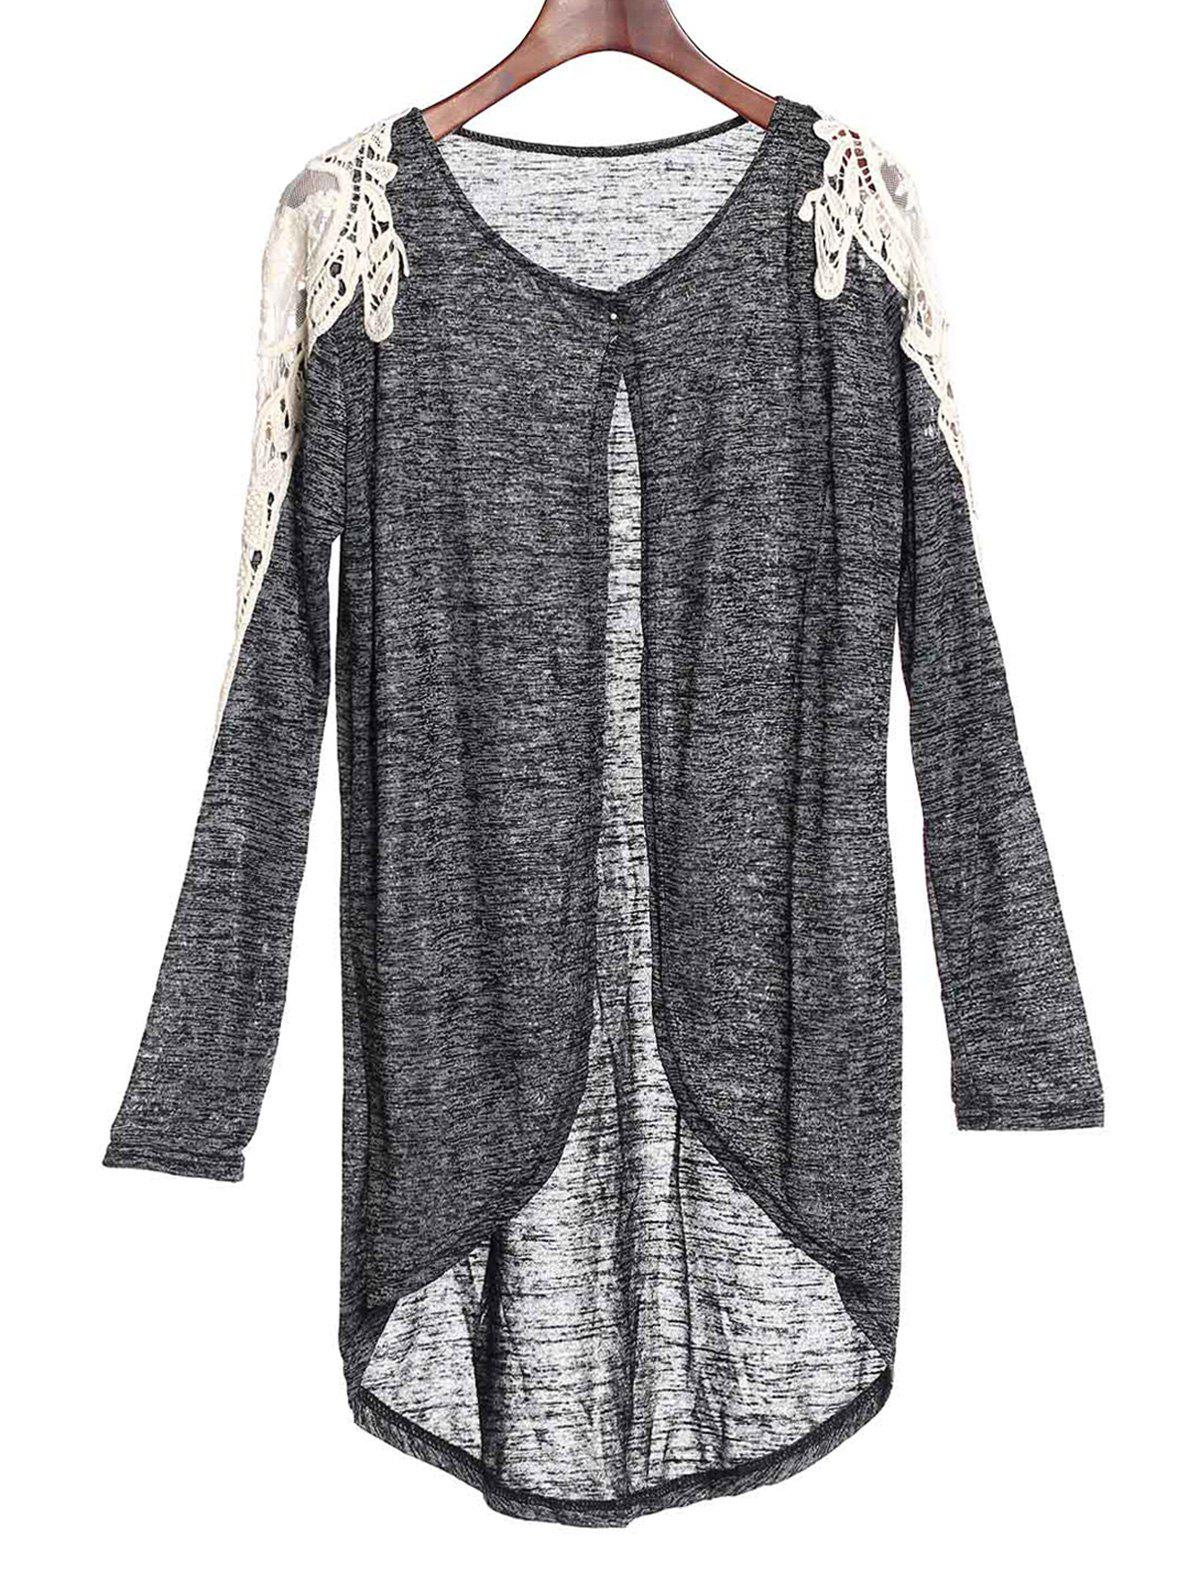 Casual Hollow Out Lace Spliced 3/4 Sleeve Gray Cardigan For WomenWomen<br><br><br>Size: M<br>Color: GRAY